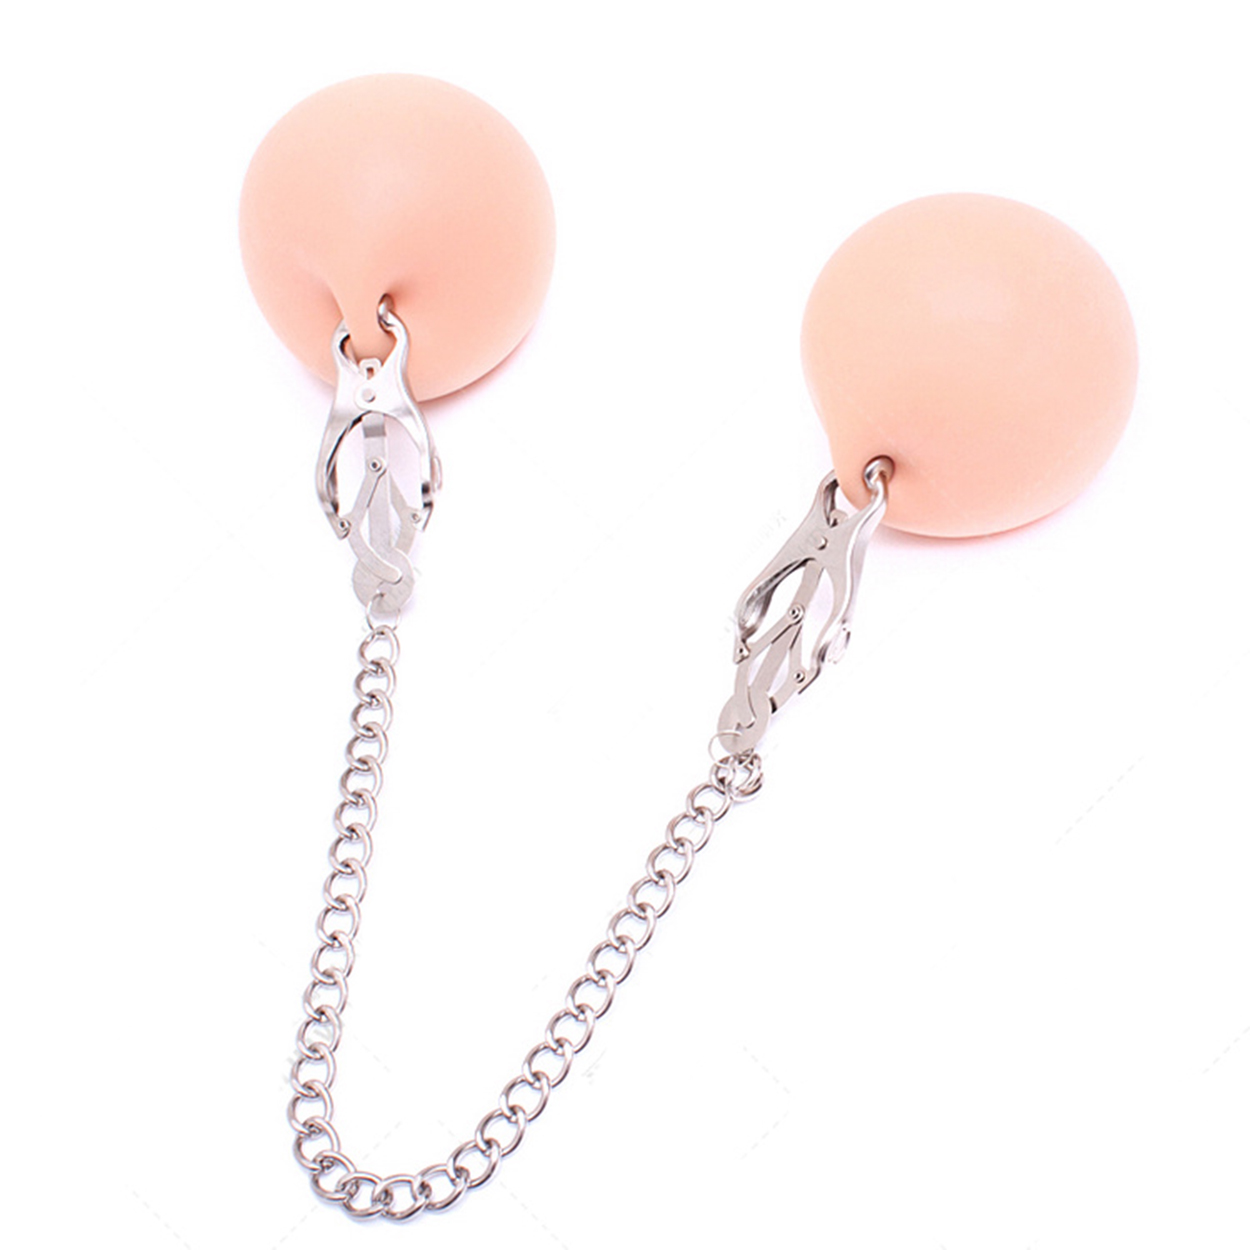 Flirting Stainless steel Nipple clip appeal Women Metal Clamps Bondage Nipples Clips Sex Games Toys For Women Couples Sex shop